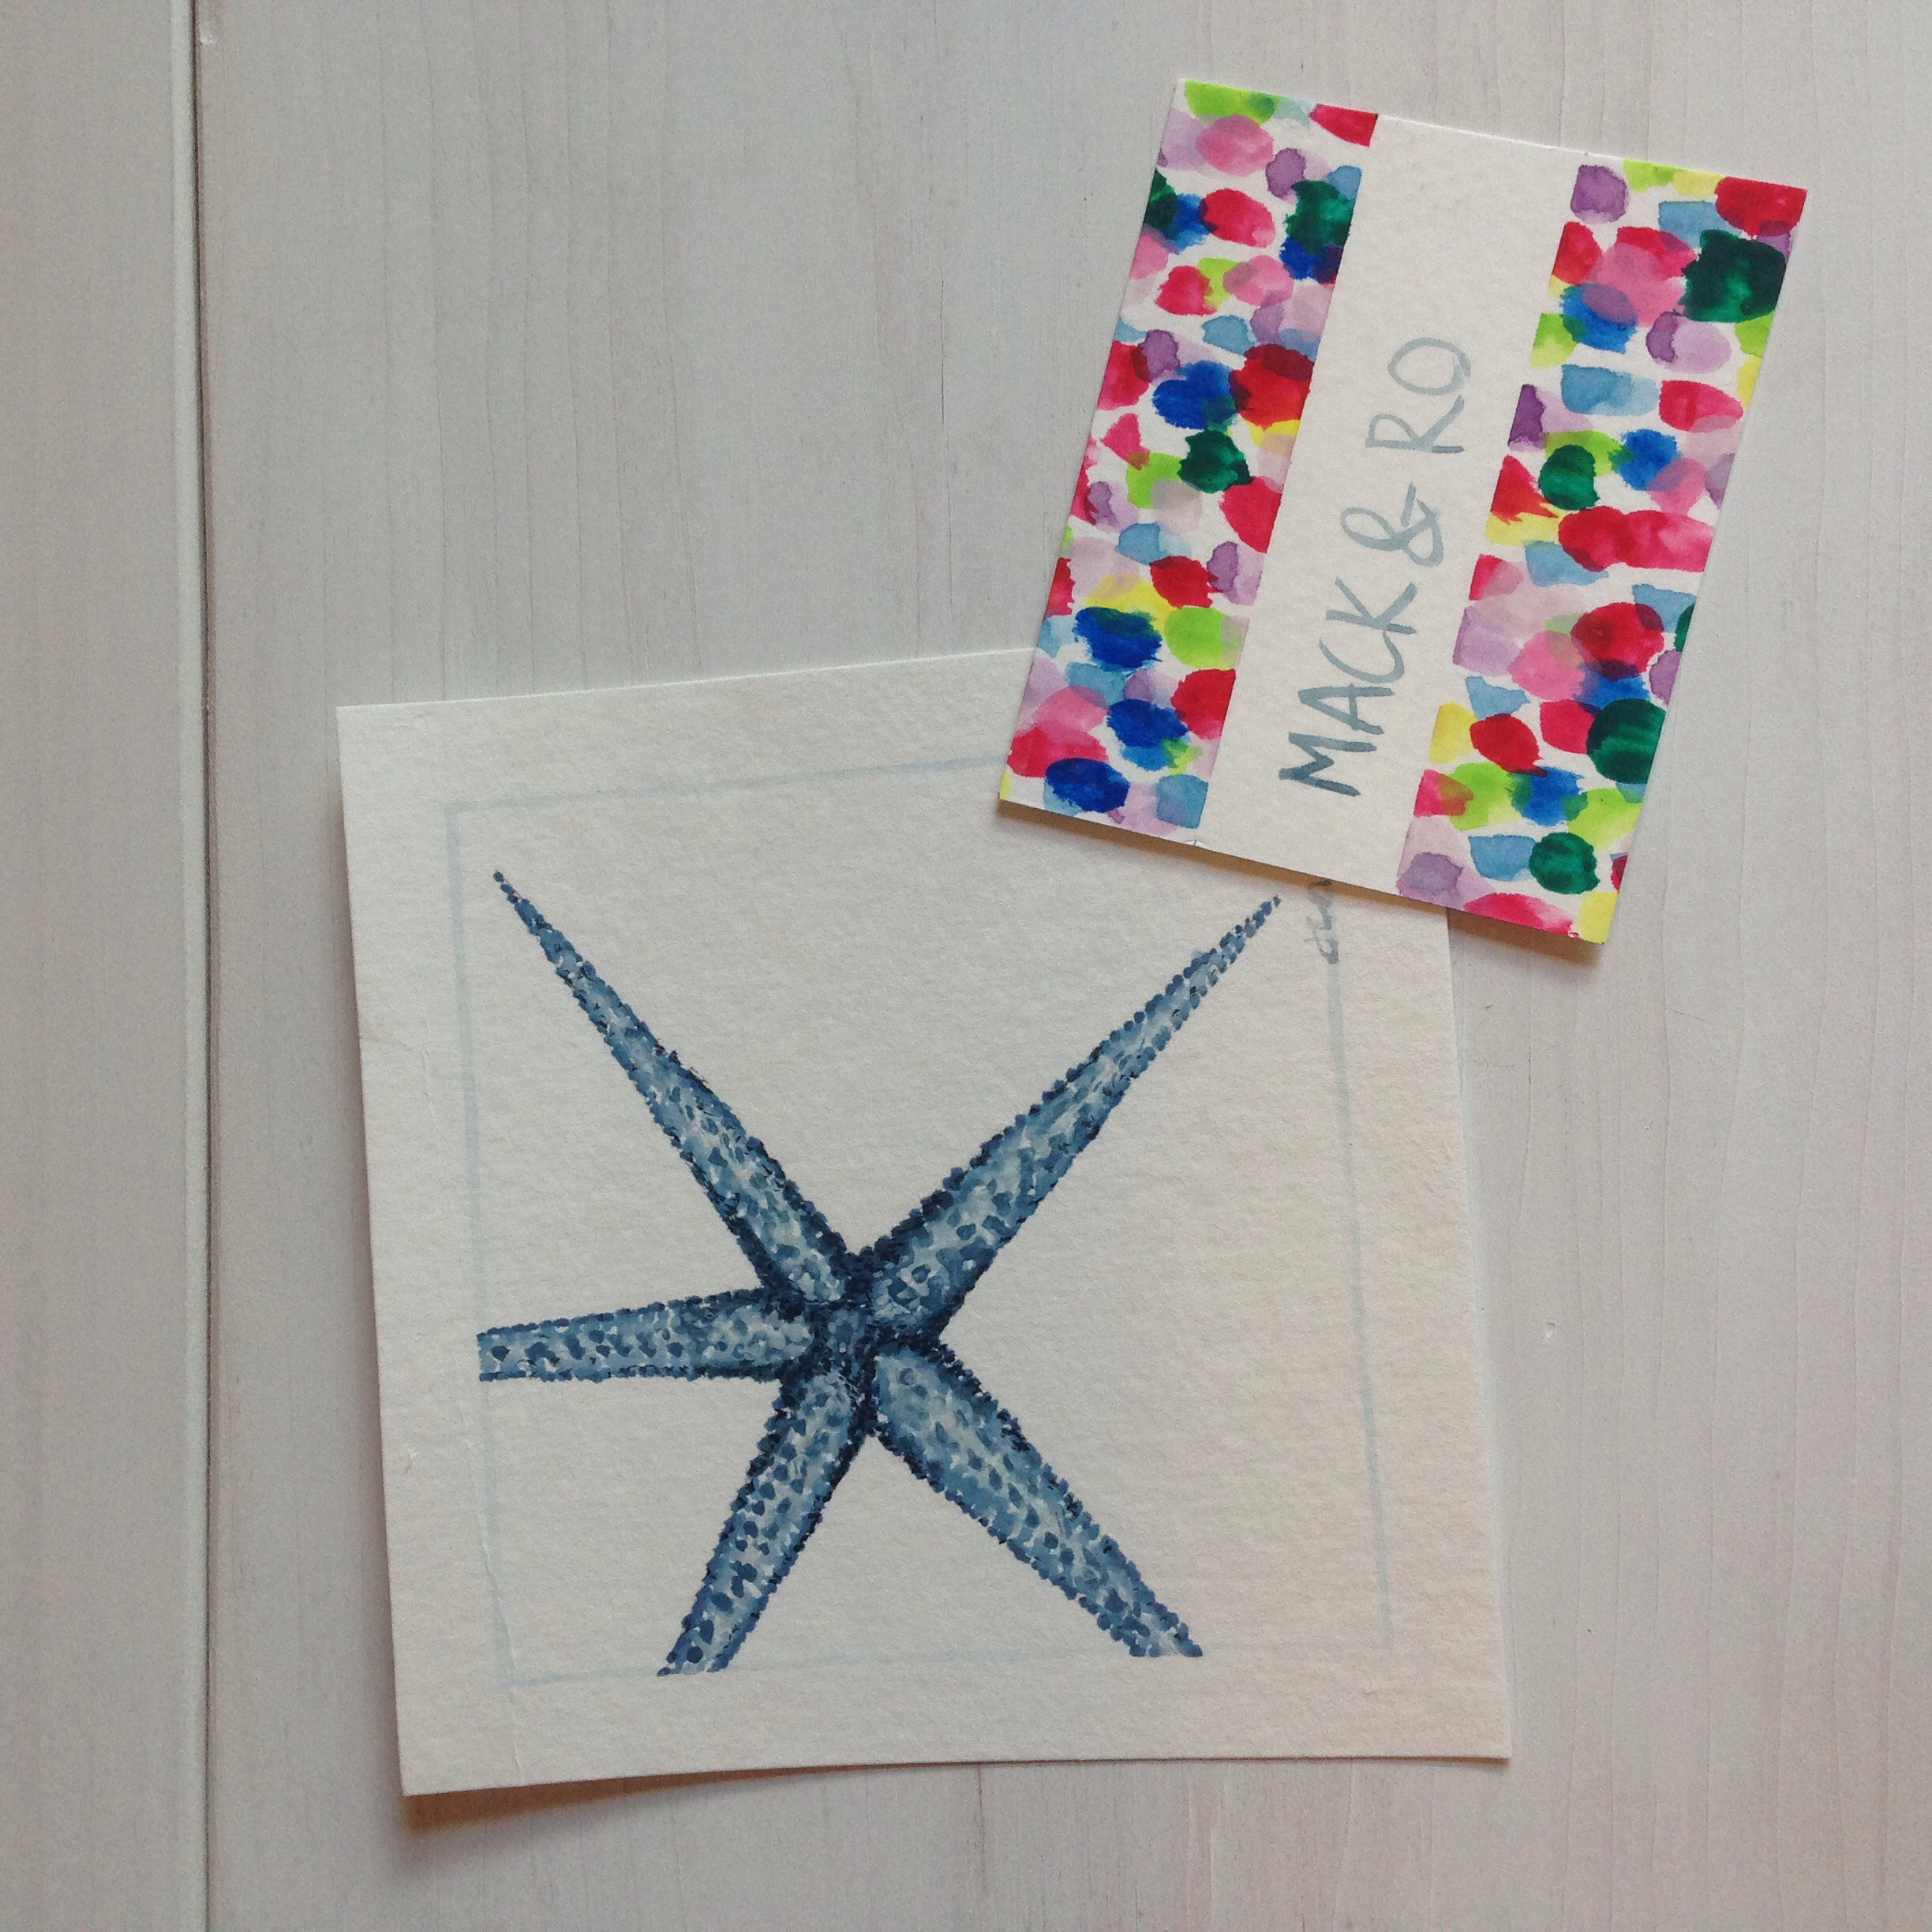 Watercolor starfish painting by Mack & Ro adds the perfect New England costal touch.